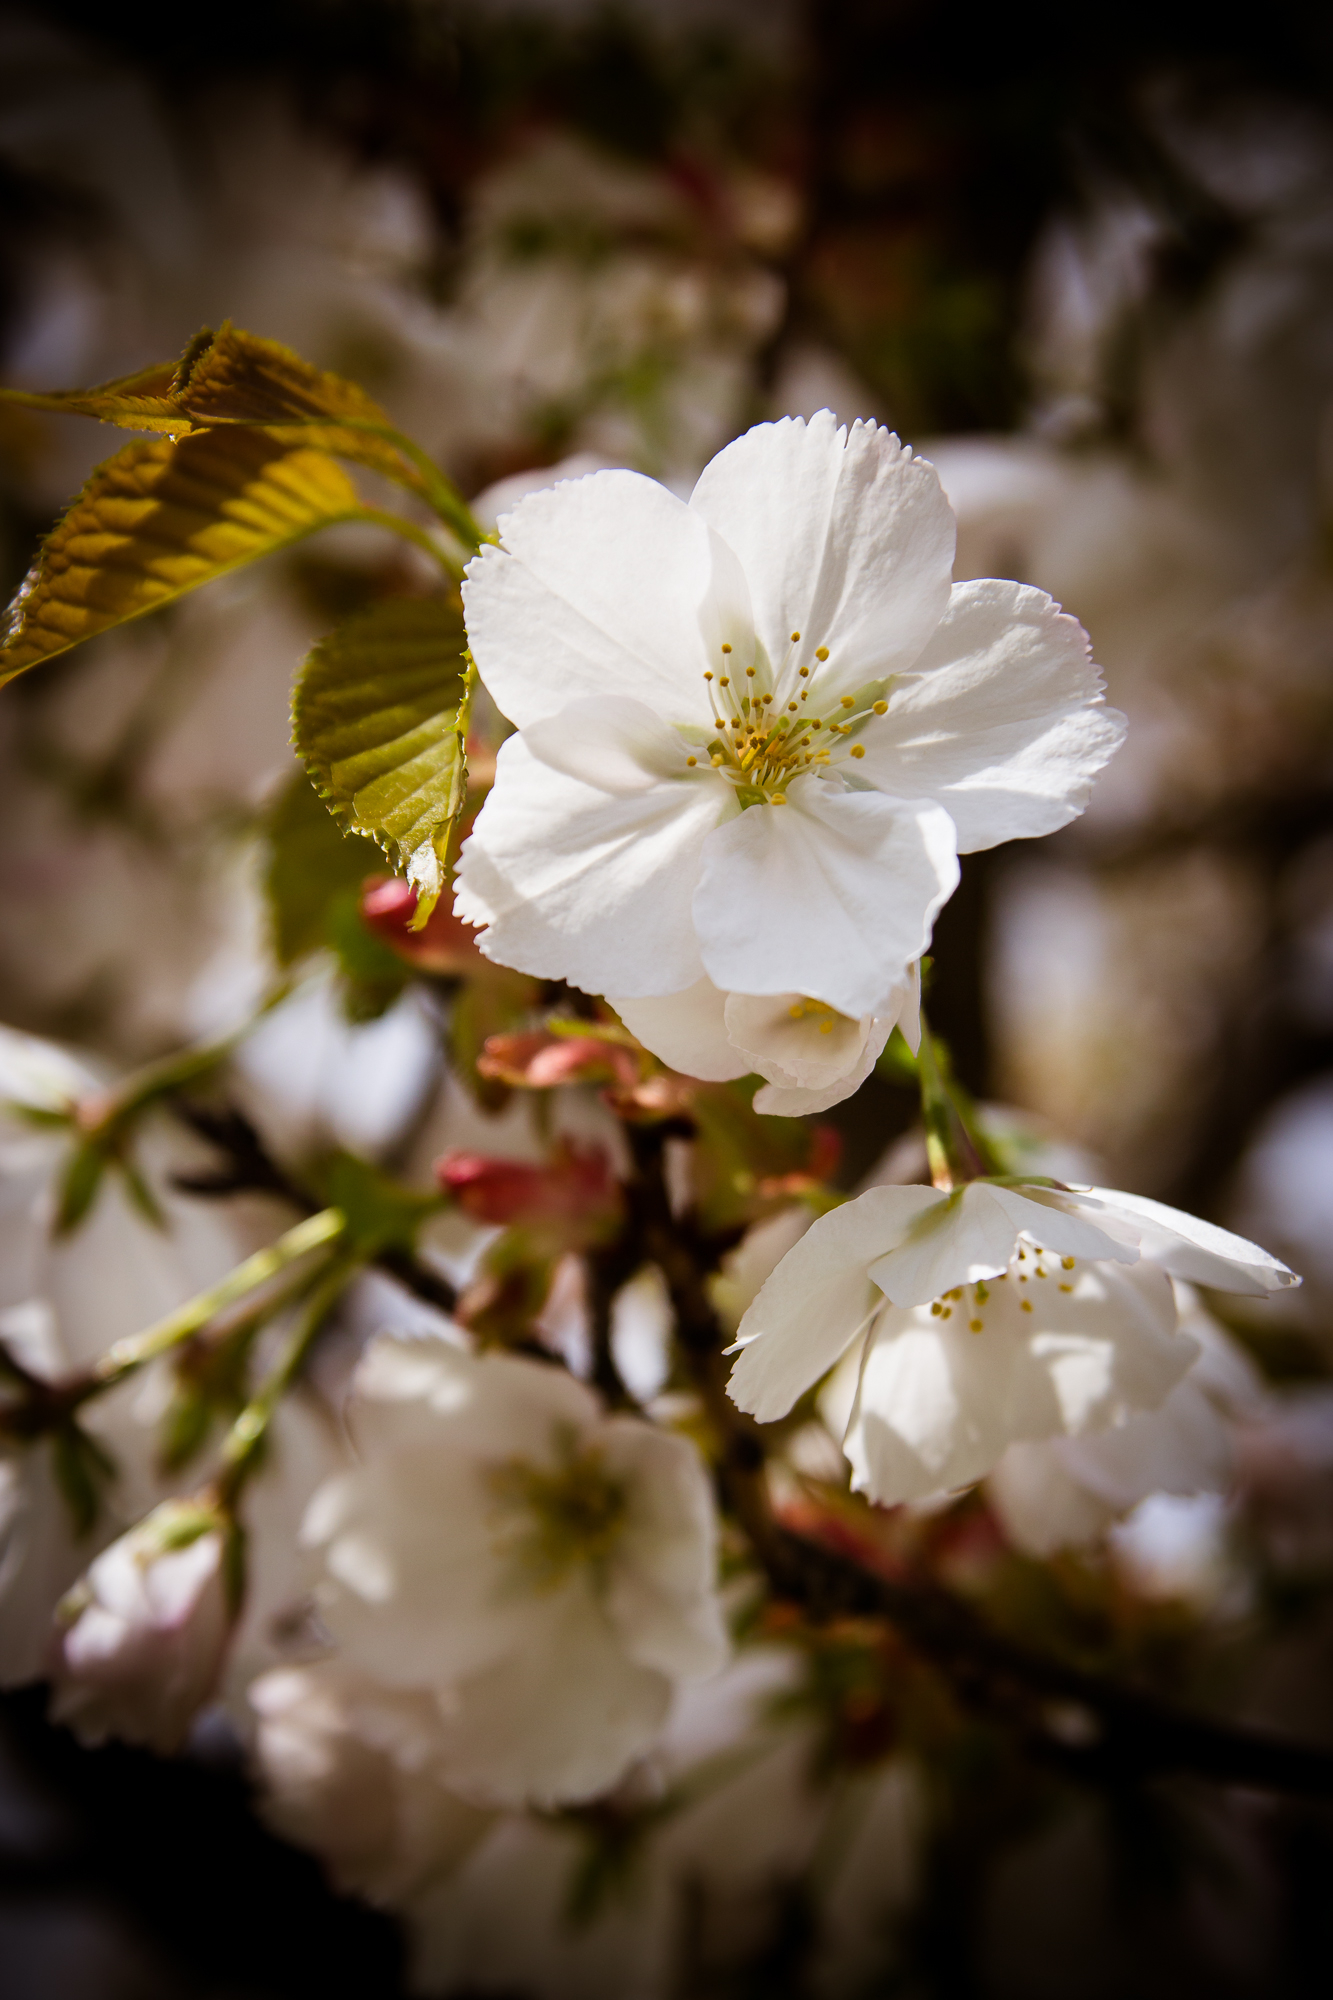 White Cherry Blossoms Via @Atisgailis